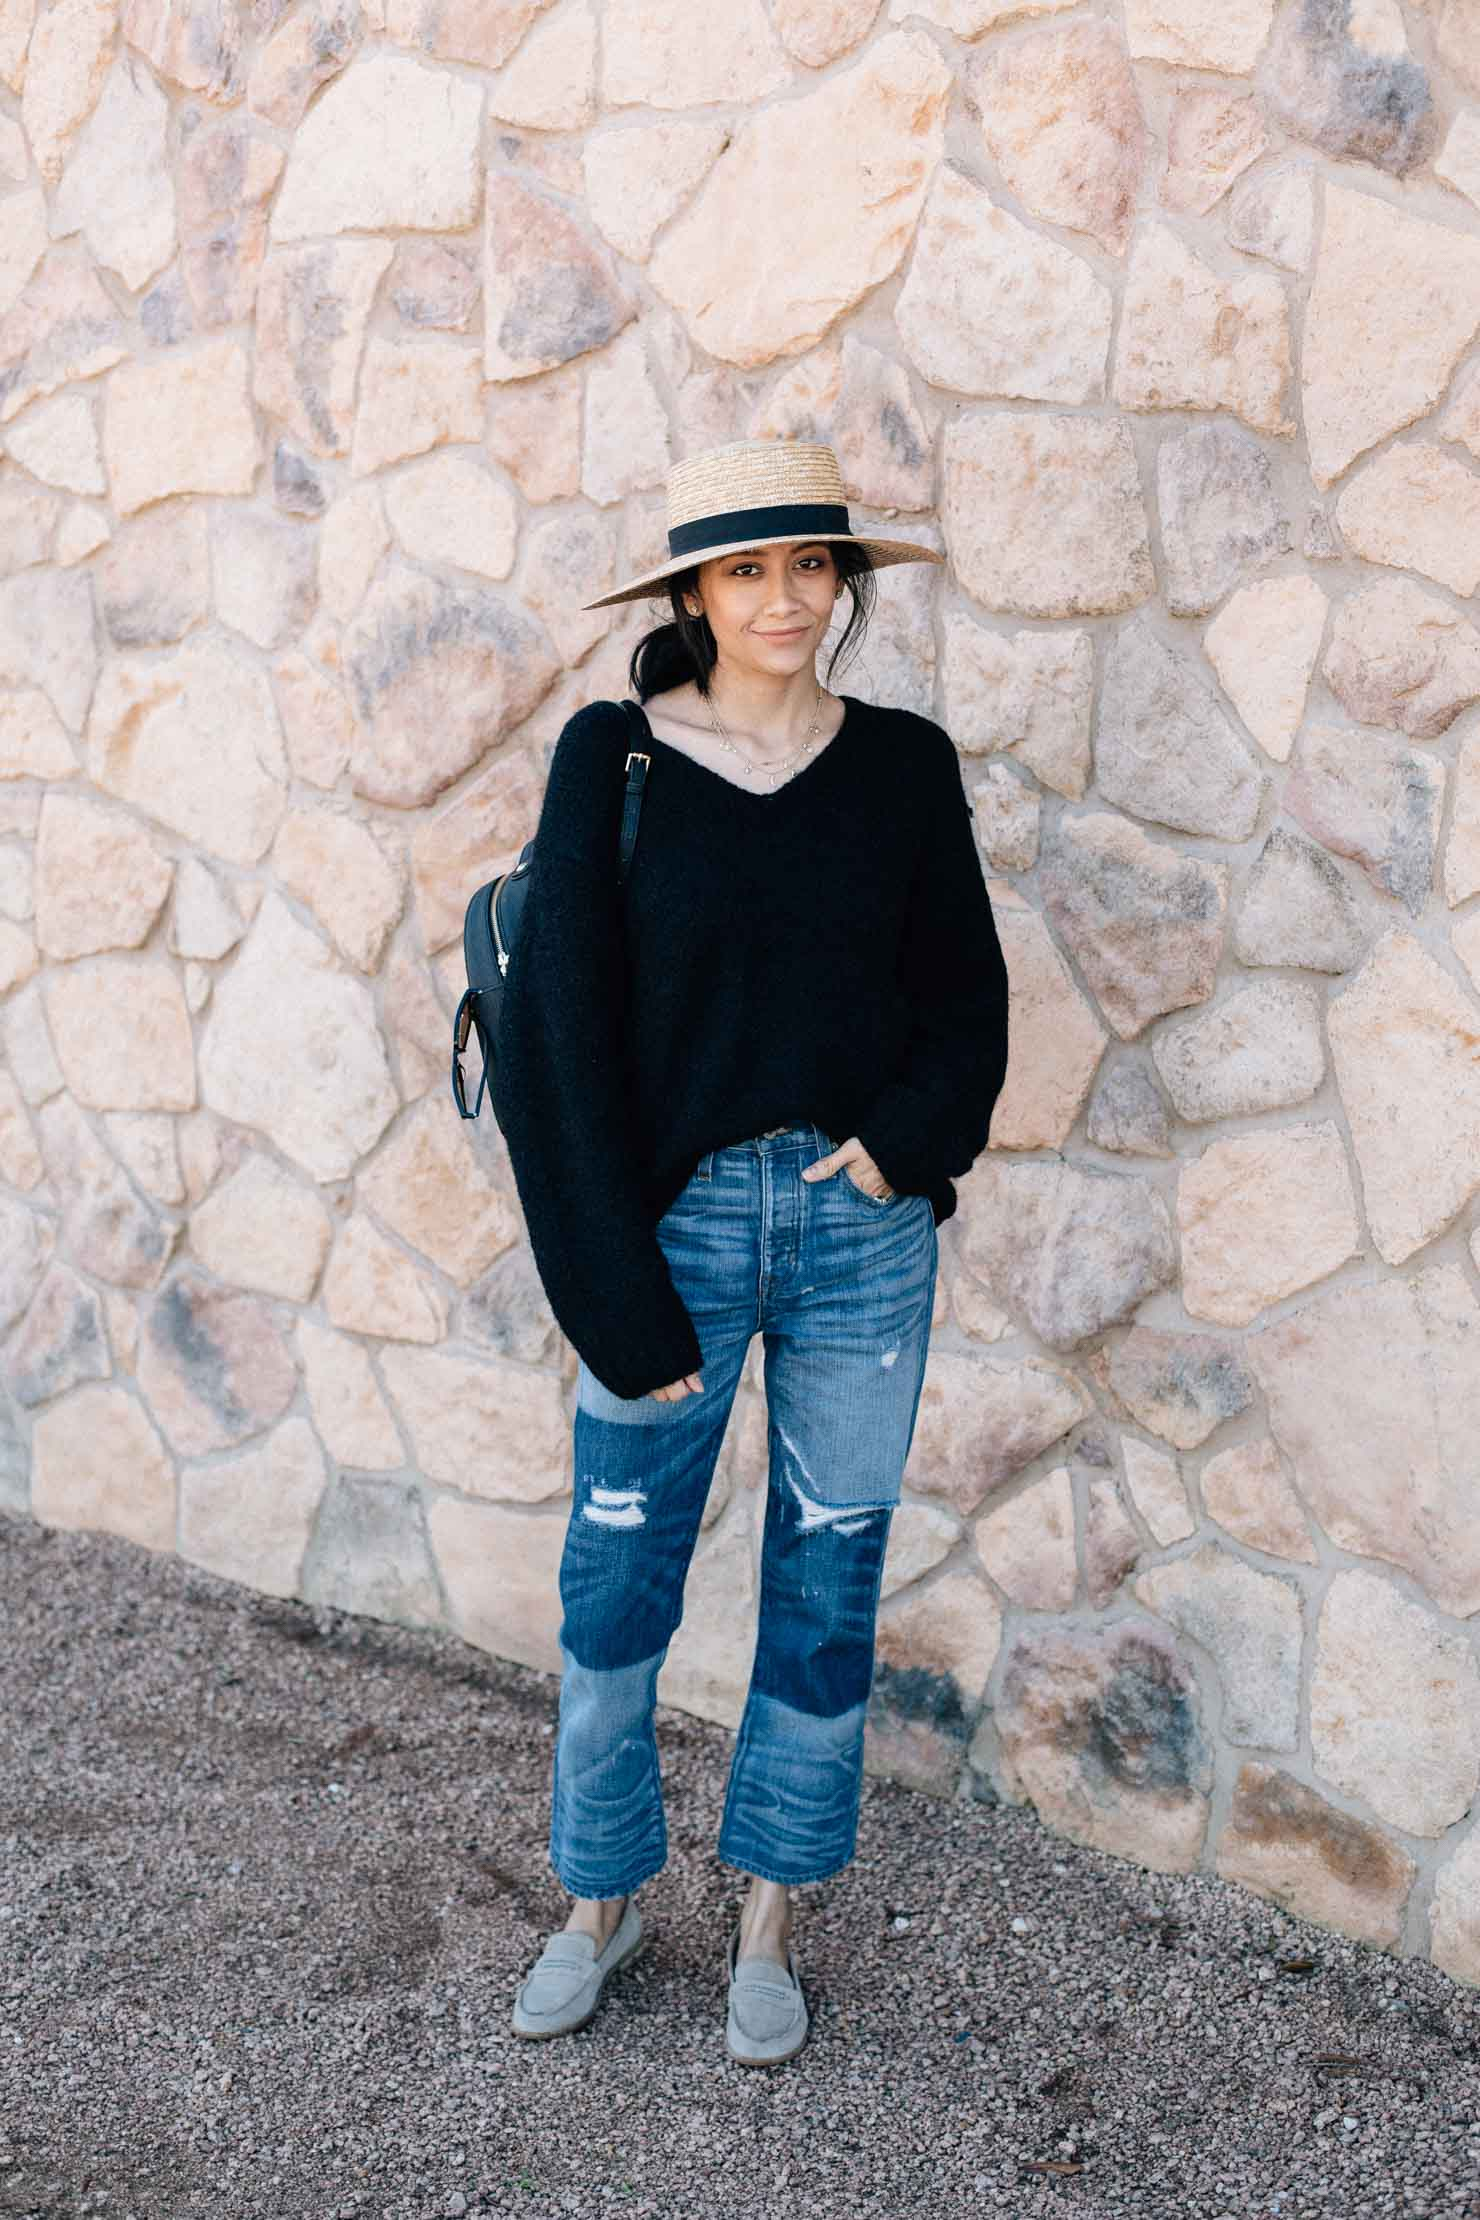 Fashion blogger Lilly Beltran in an effortless look with straight fit jeans, oversized sweater and suede loafers.